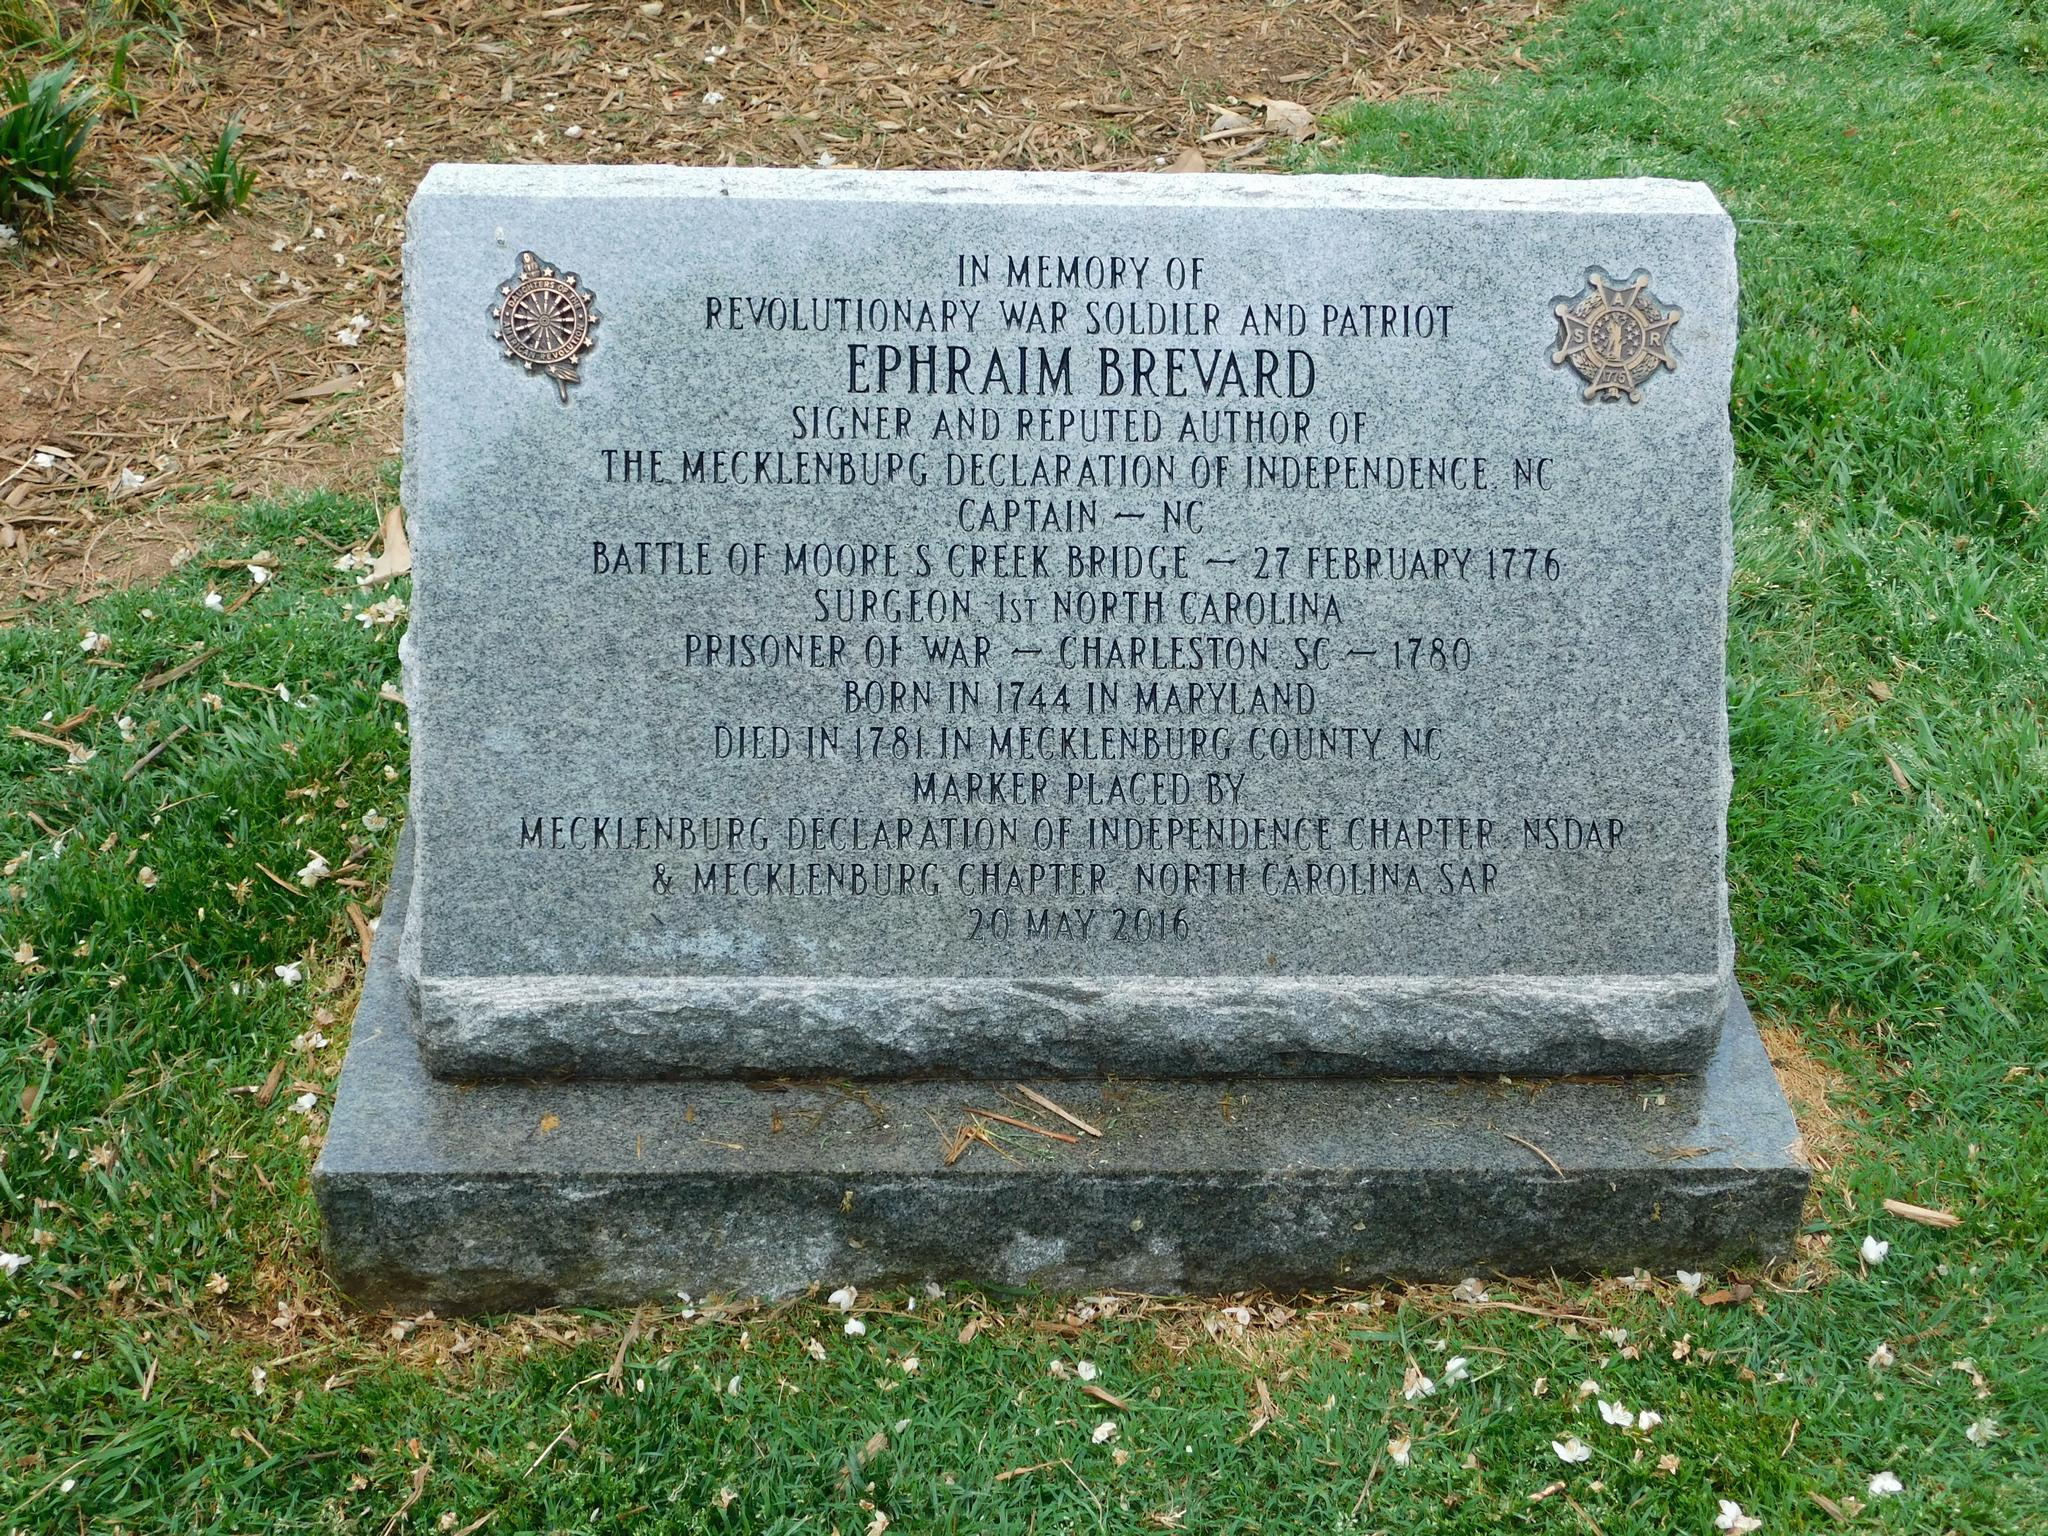 The precise location of Ephraim Brevard's buried remains in Mecklenburg County, North Carolina, is unknown. But this marker in the Old Settlers Cemetery, Charlotte, North Carolina is a tribute to the life and legacy of Dr. Brevard.